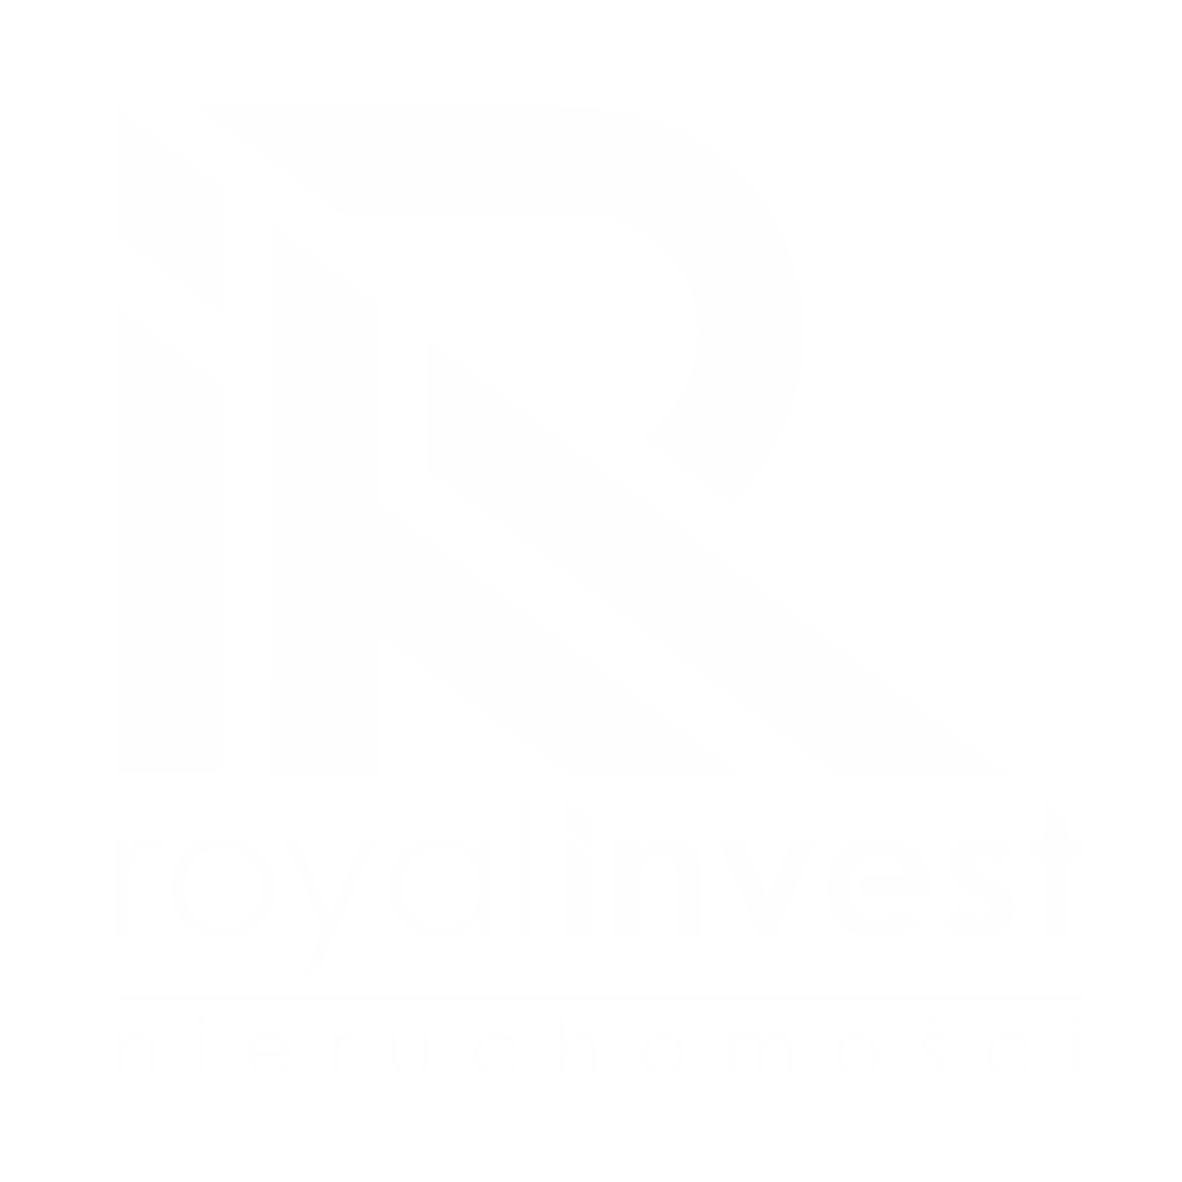 royalinvest.png